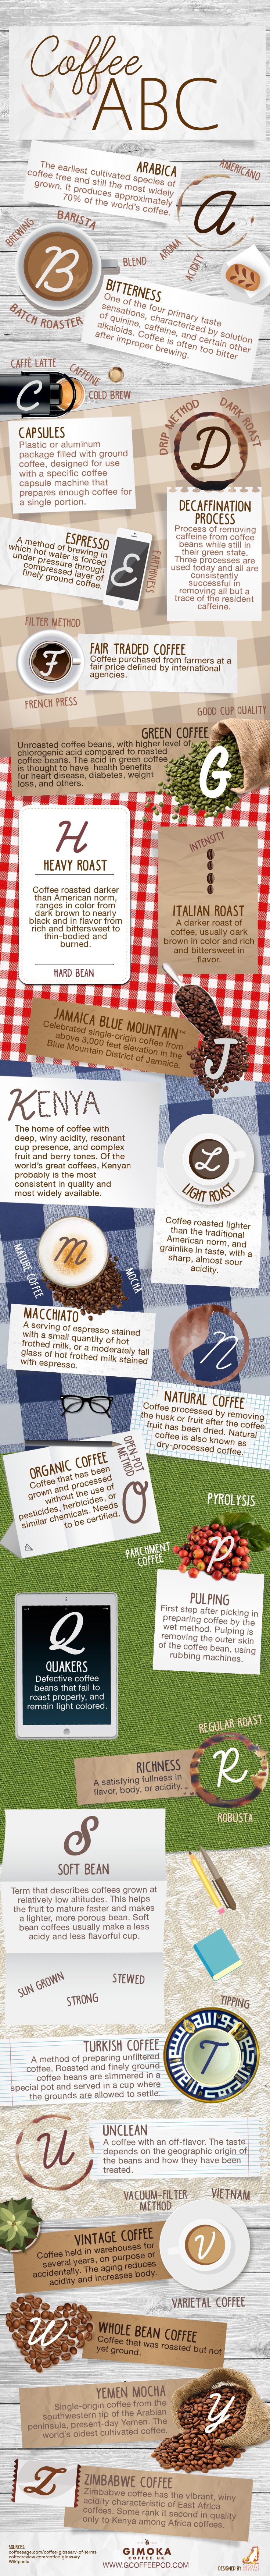 Coffee - From A to Z